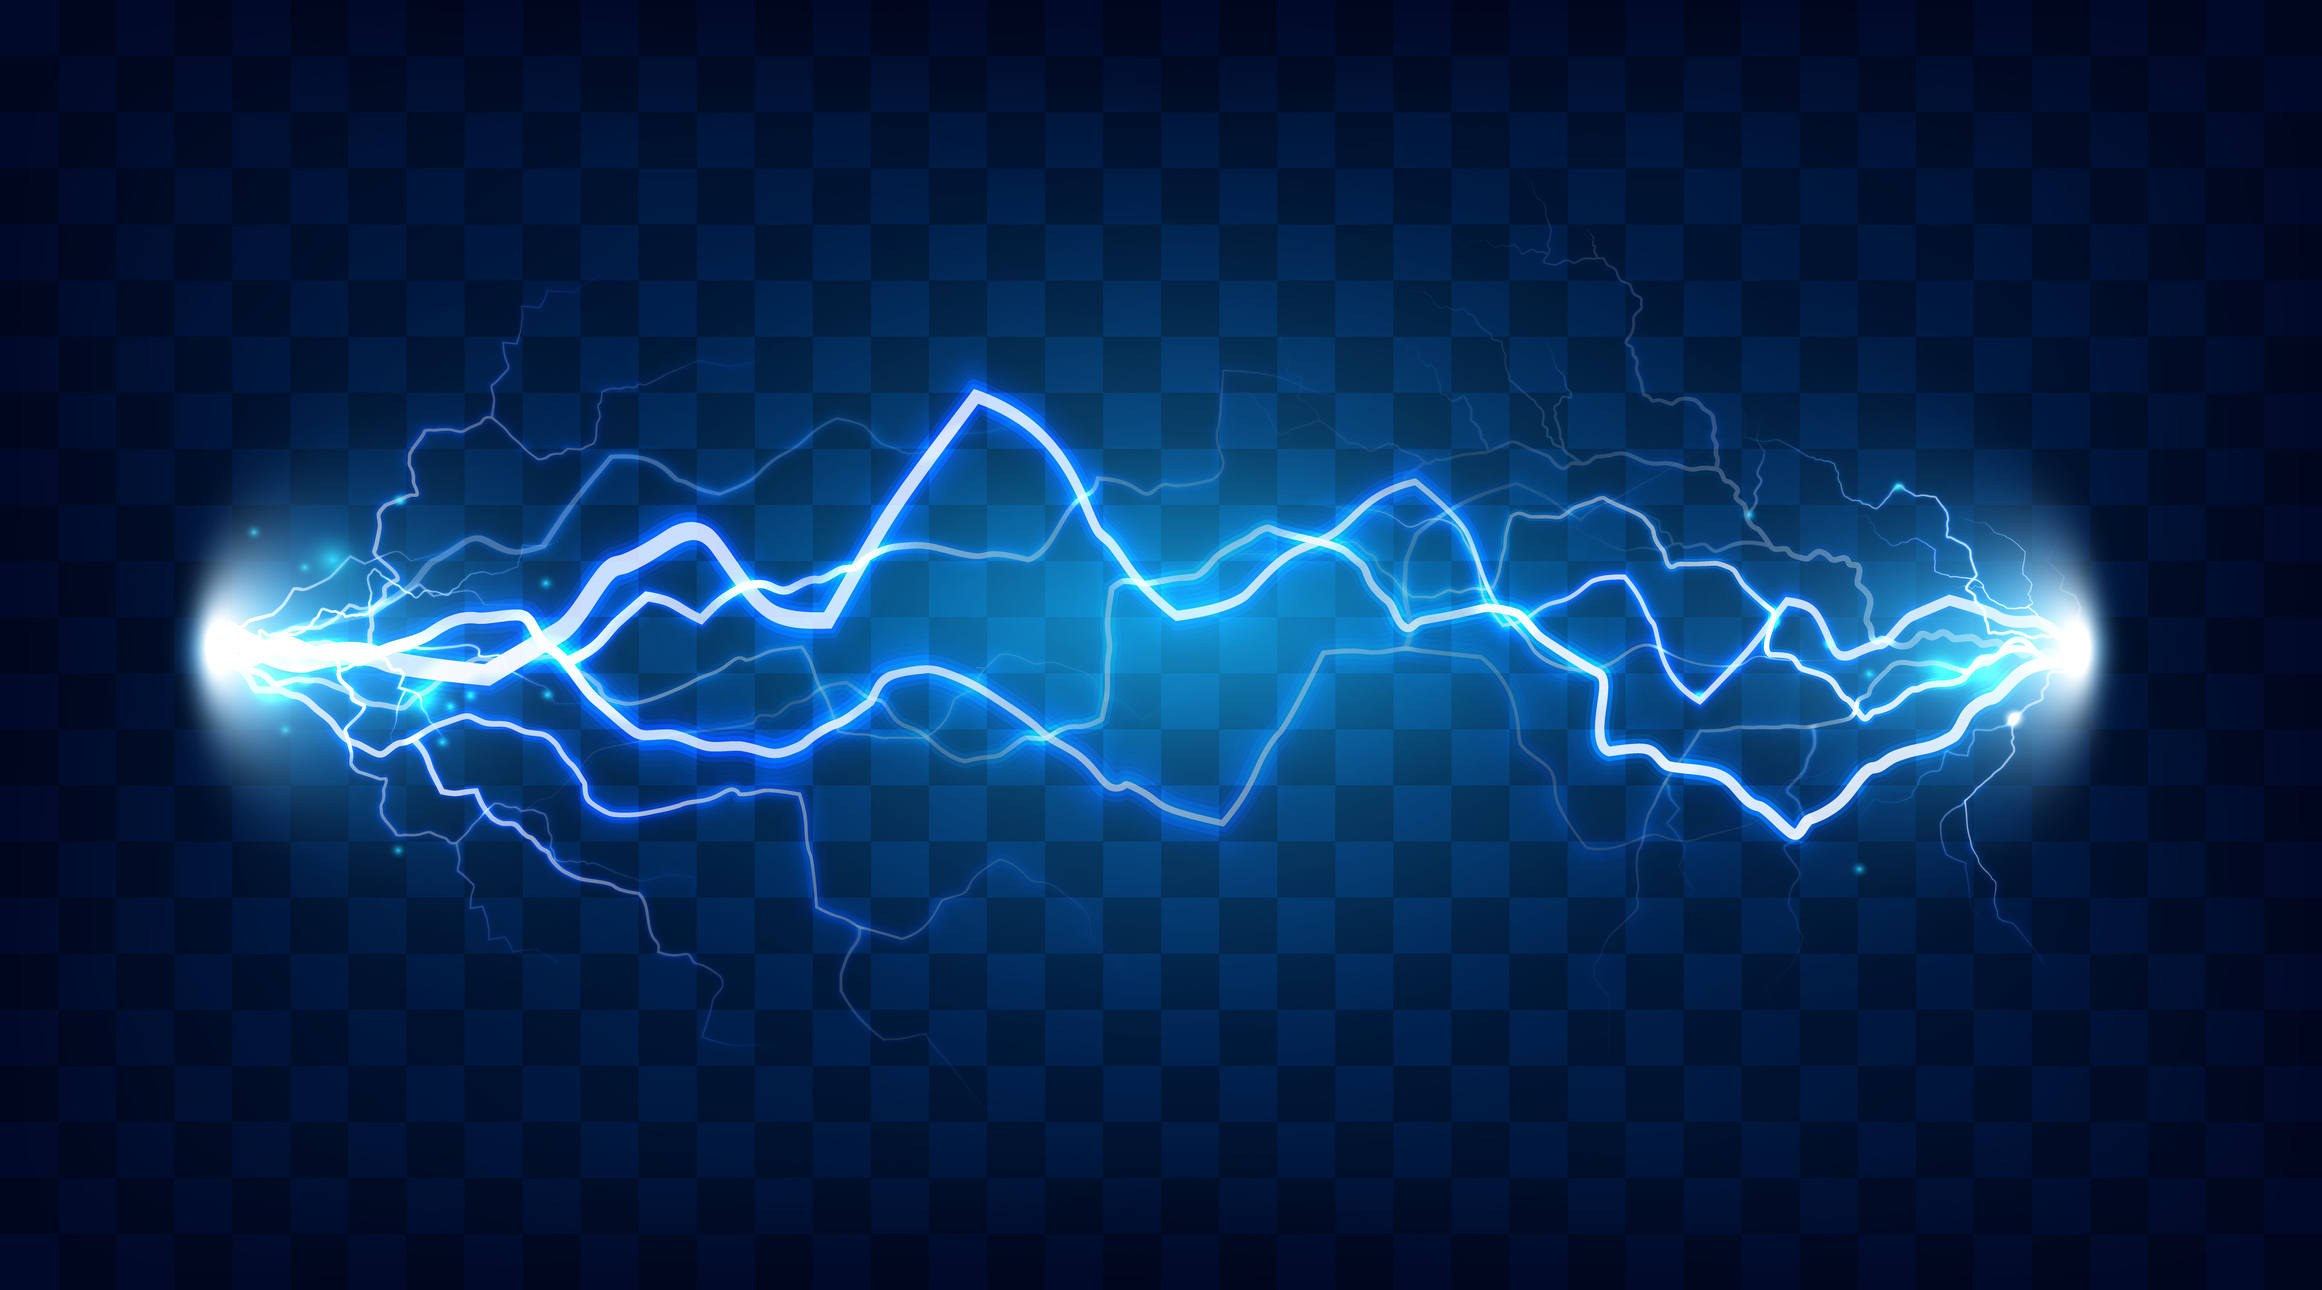 Photo illustration showing electrical current.